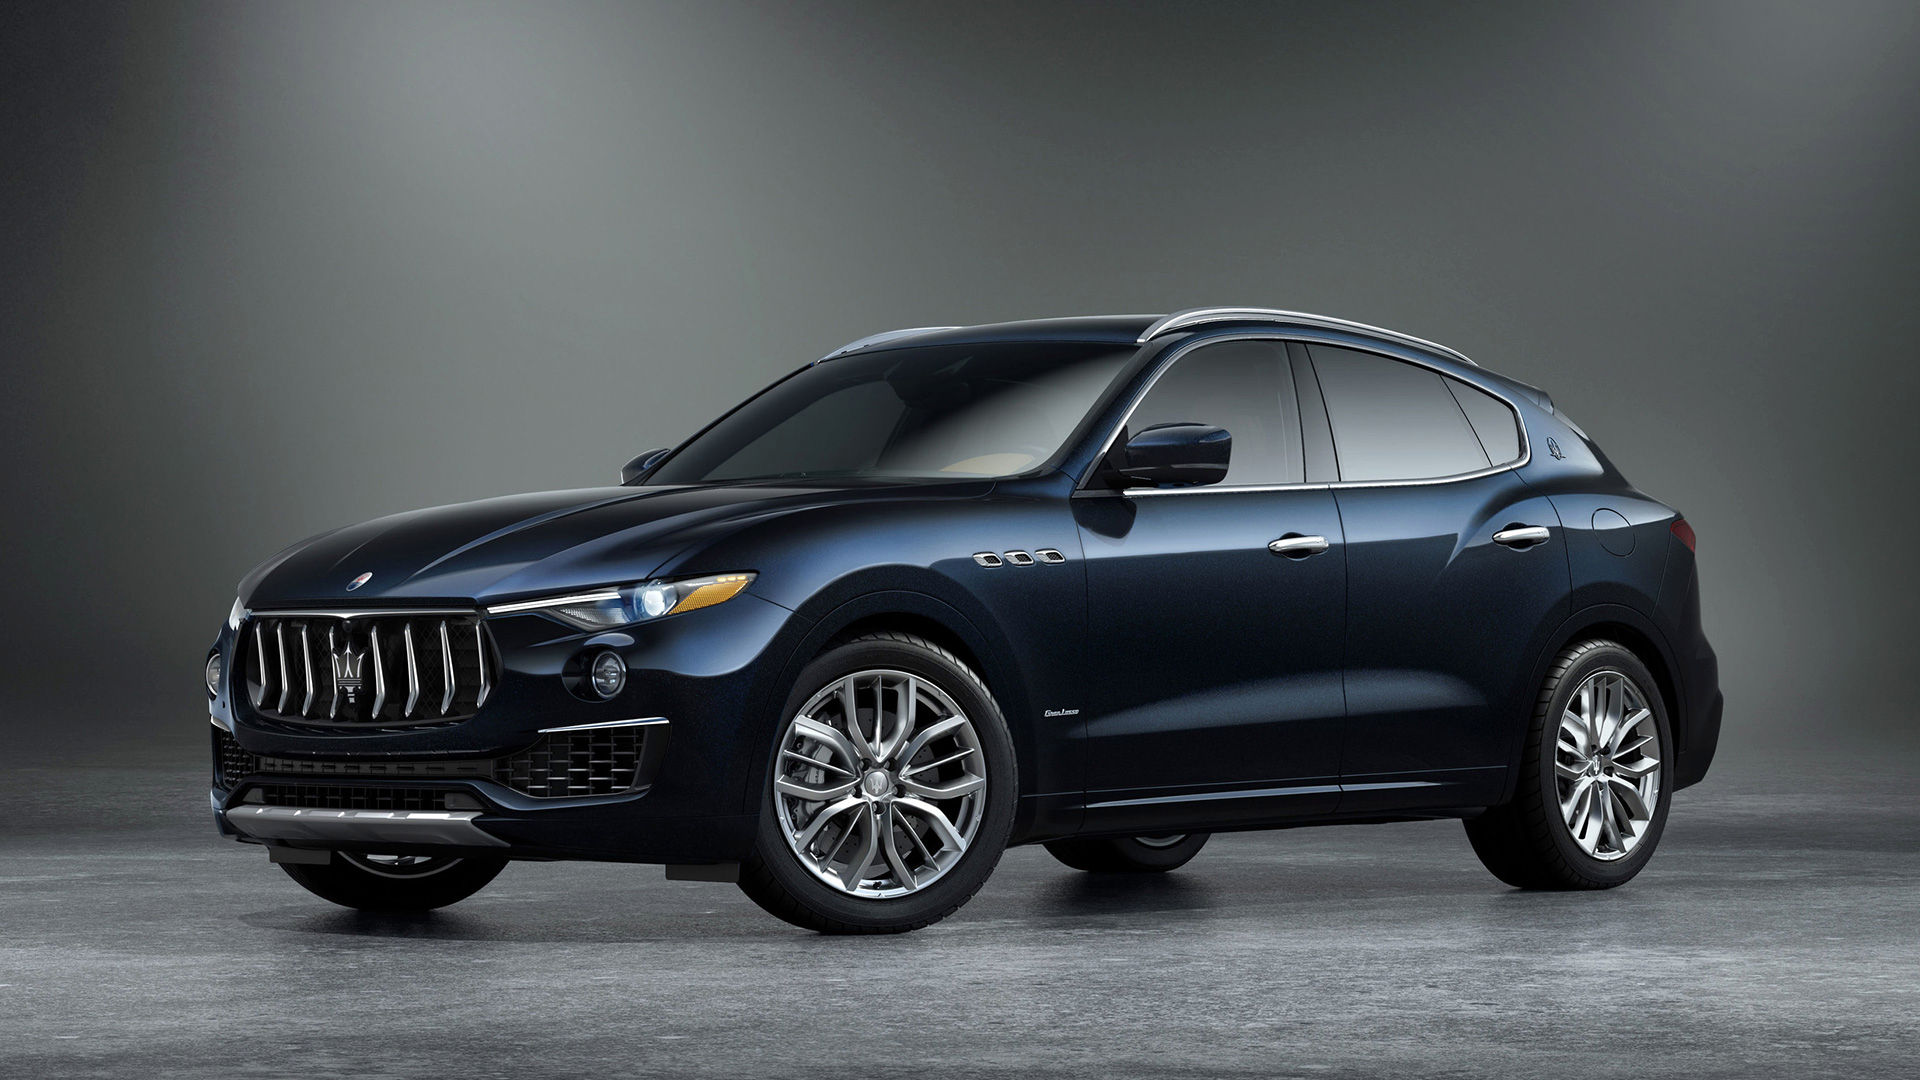 Maserati Levante SUV Edizione Nobile - side view - color Blue Nobile (royal blue)